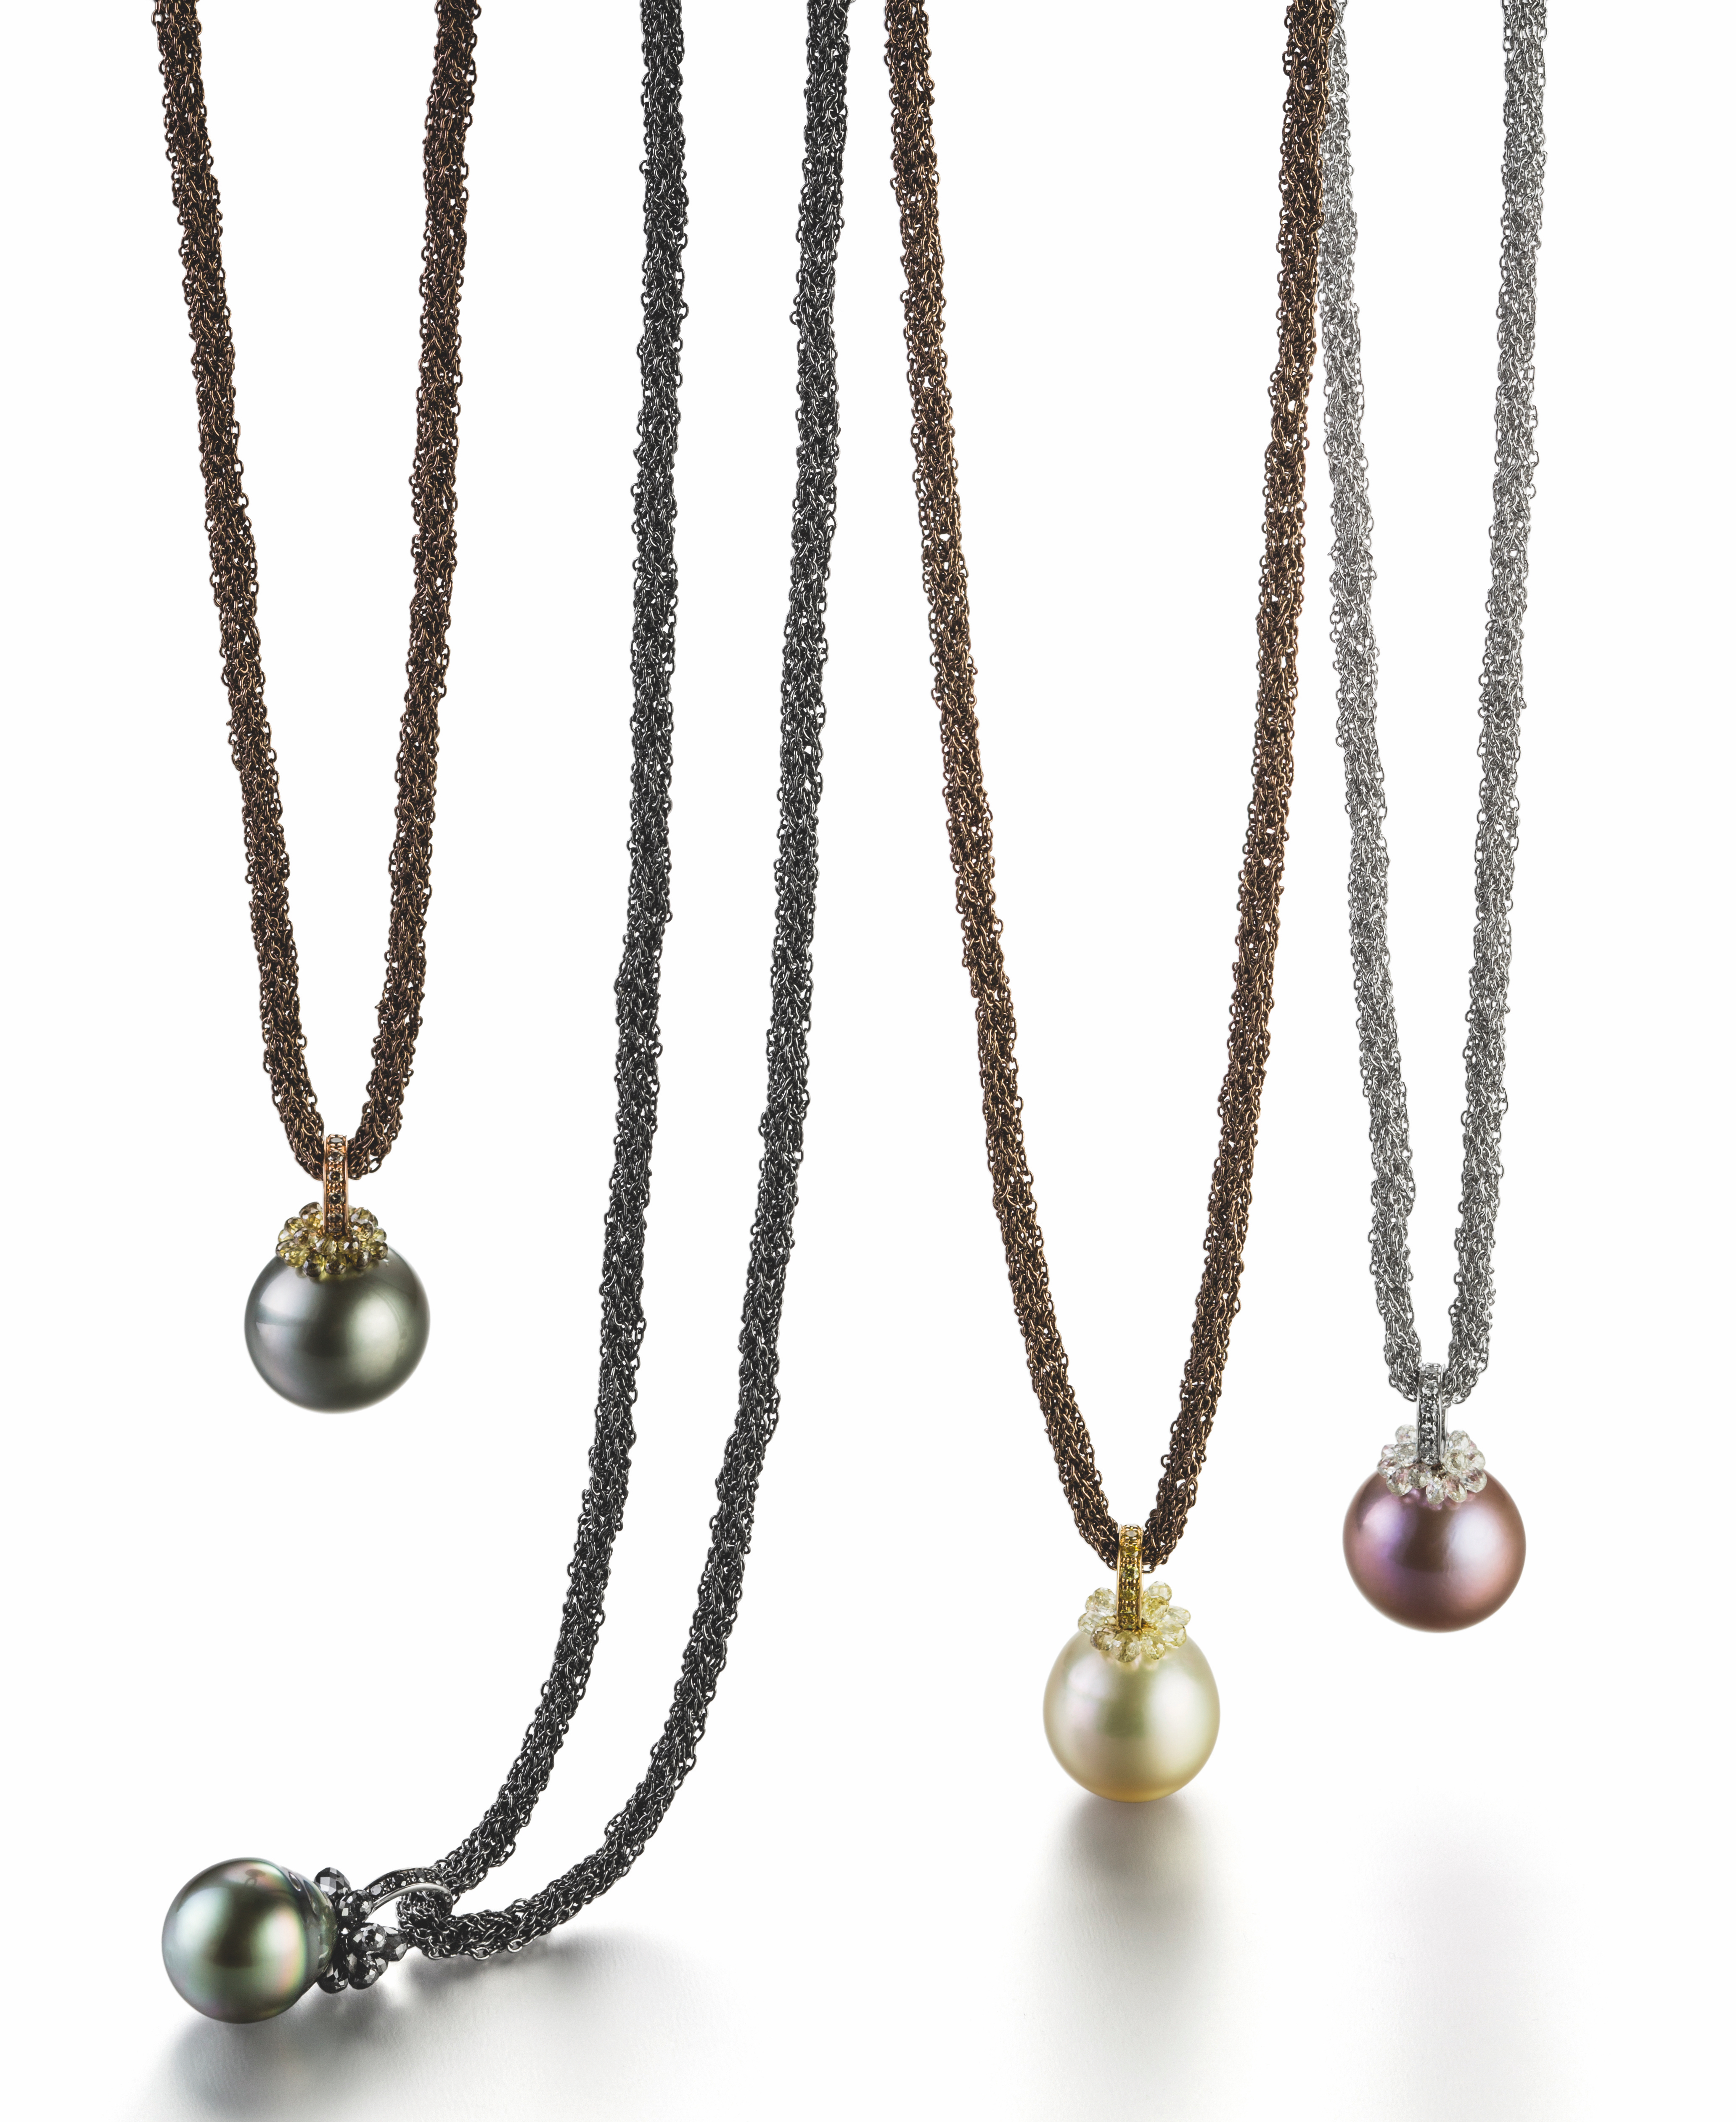 Michael Weggenmann Rendezvouz necklaces | JCK On Your Matket